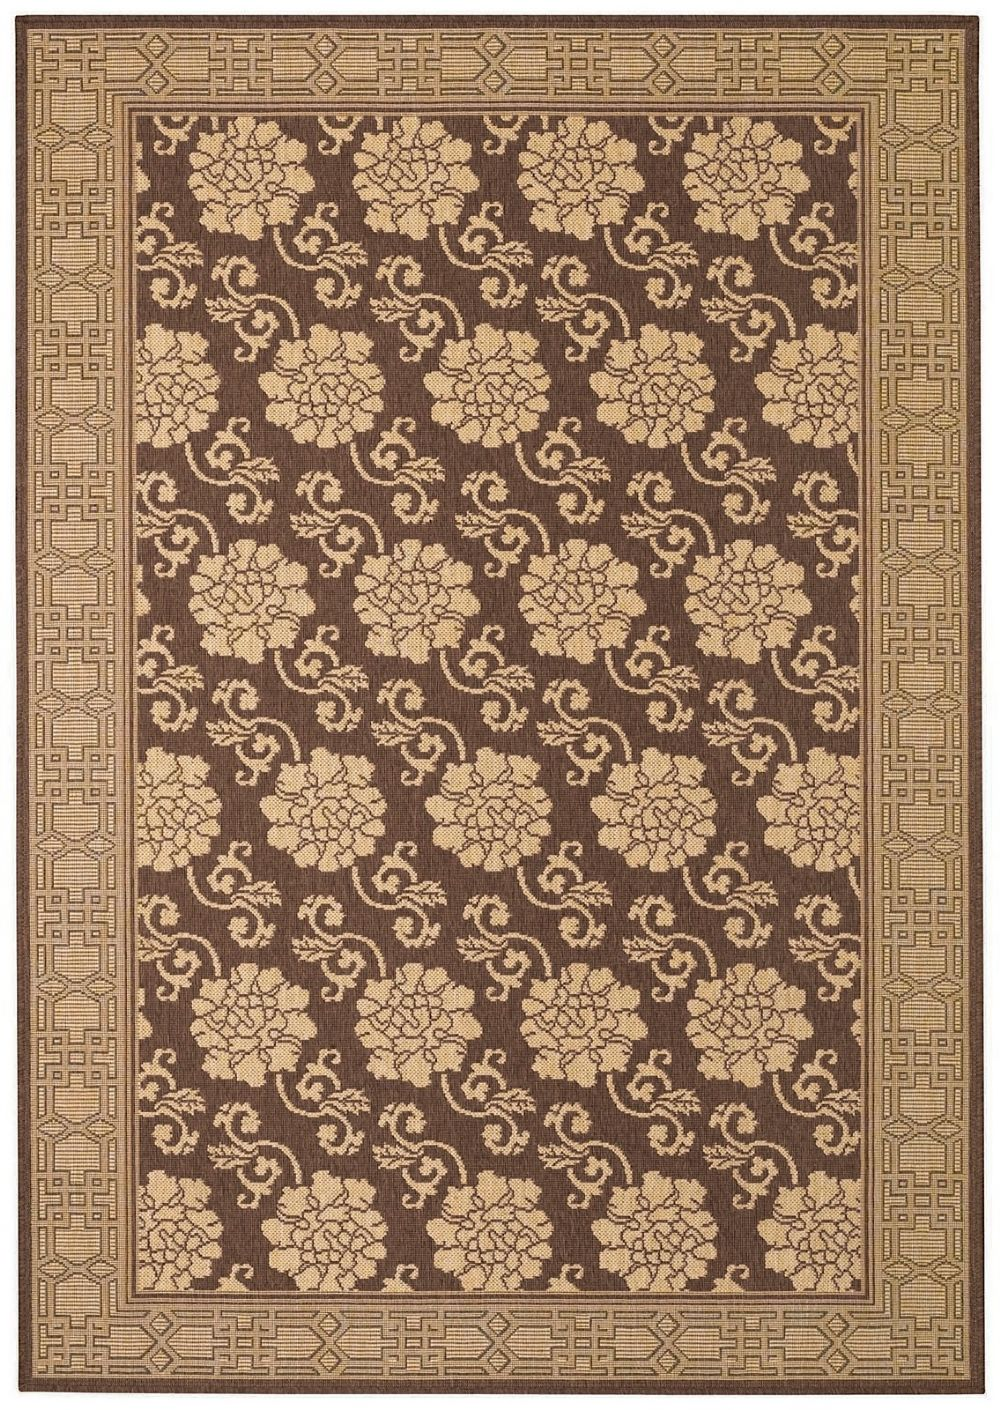 capel solaria-lotus transitional area rug collection